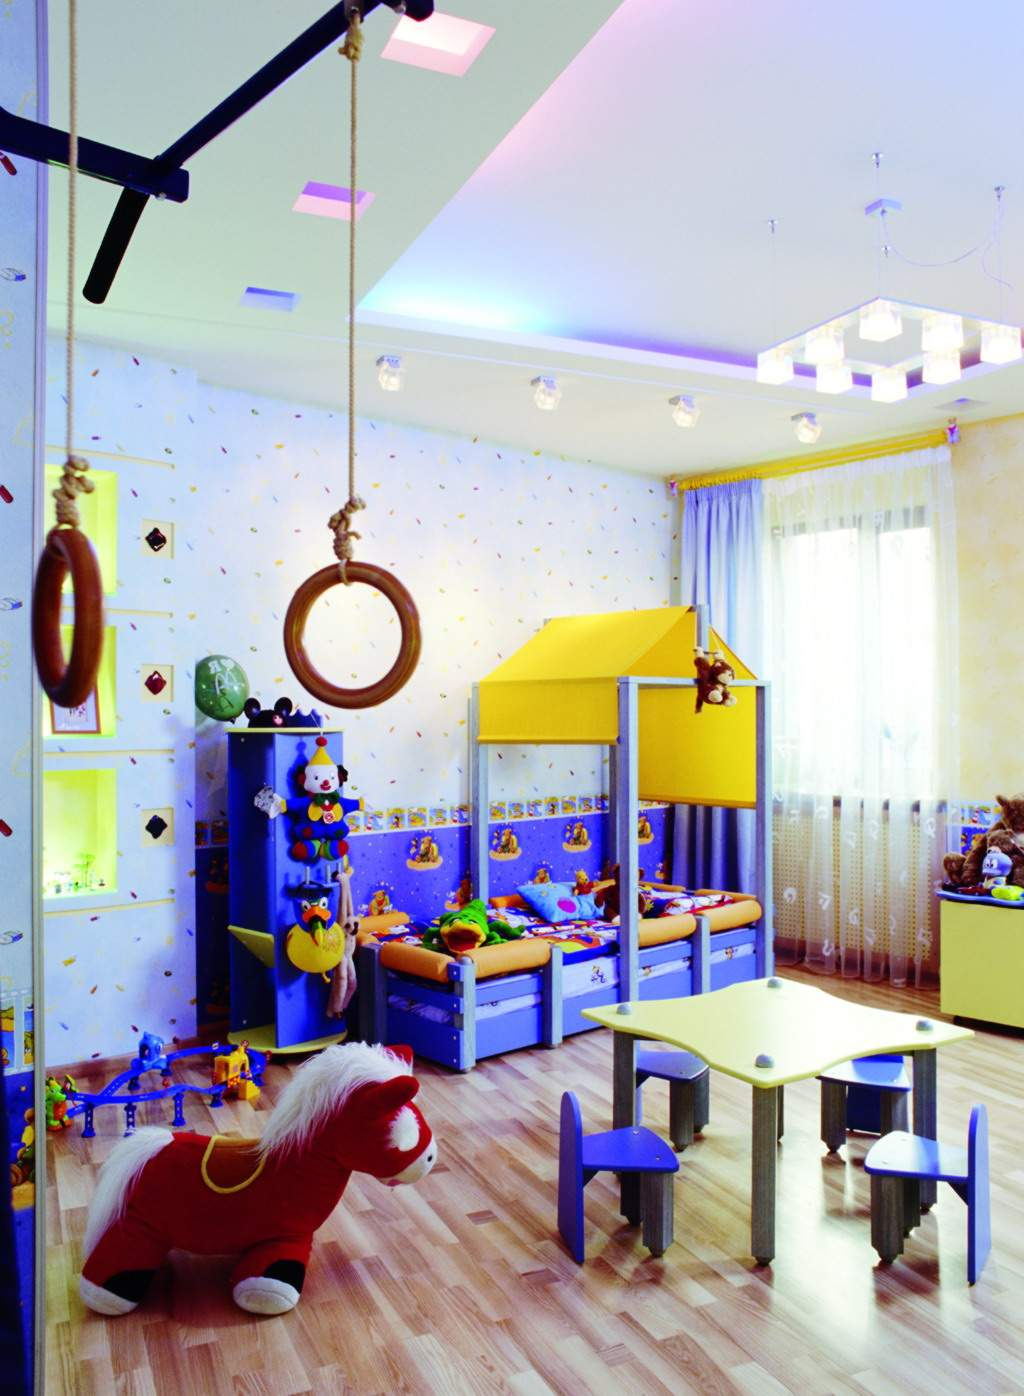 The Kidsroom Blue Kids Room Design Architecture And Interior Design